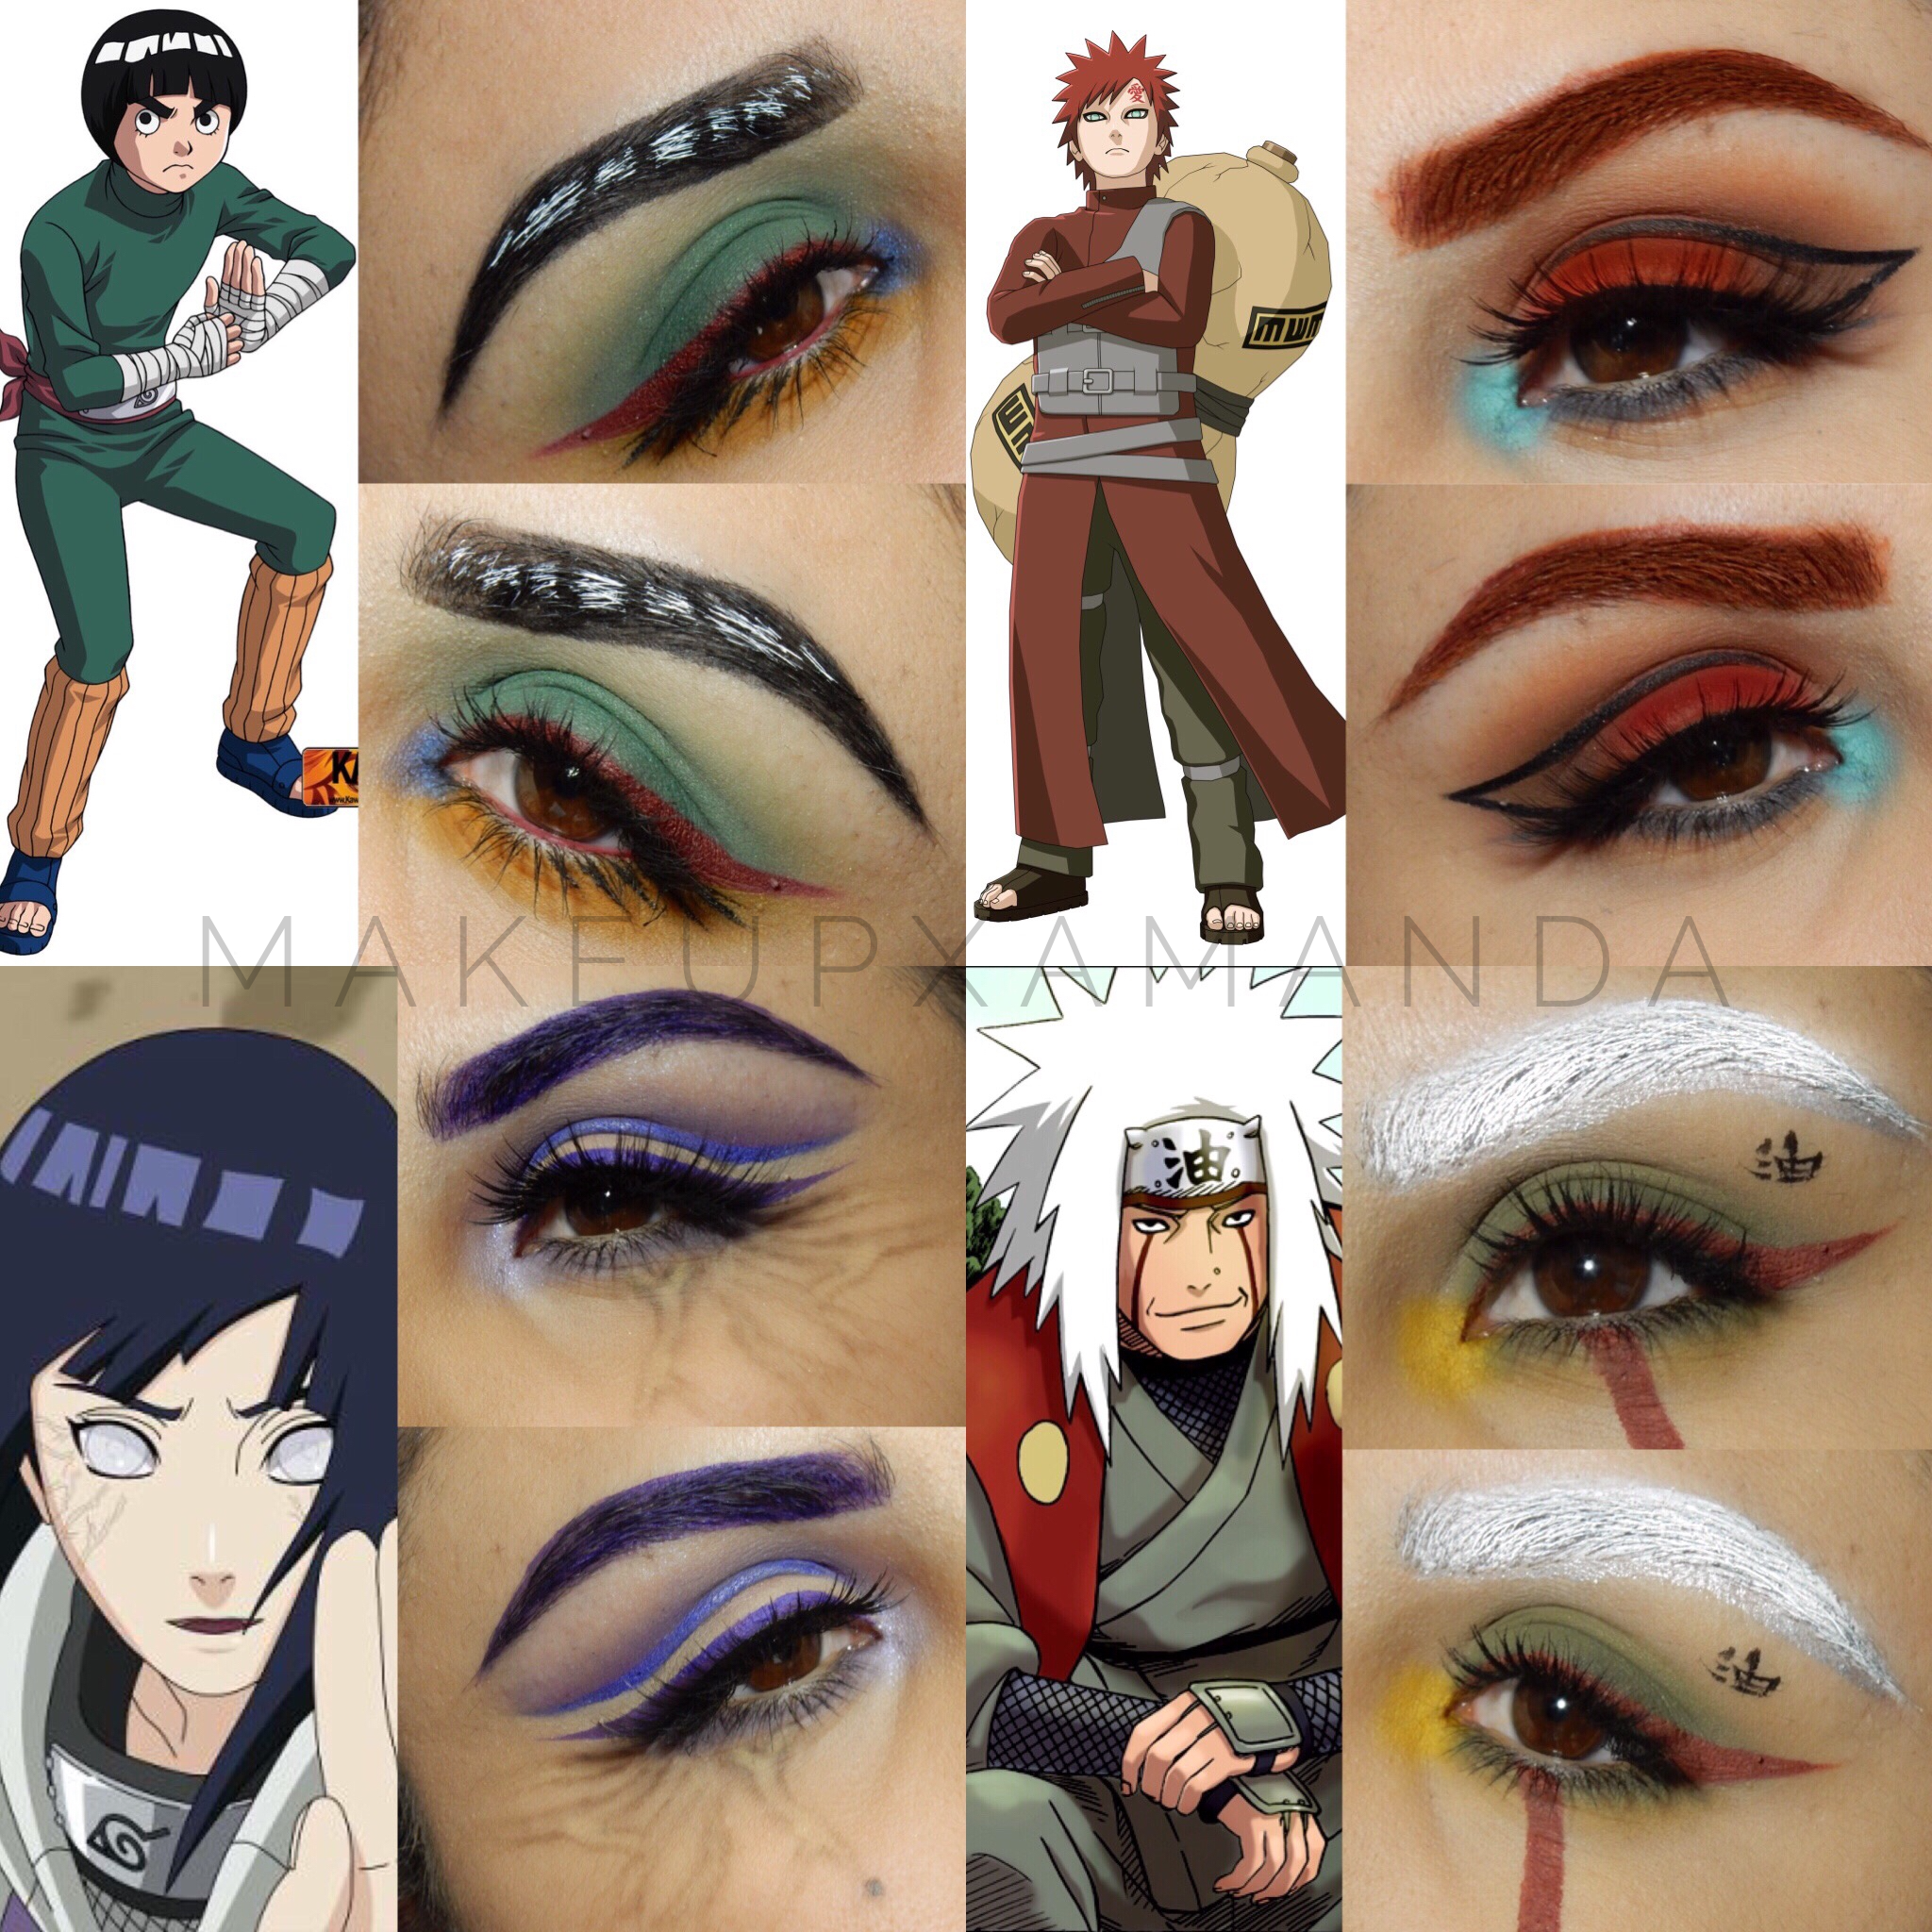 Best Of Naruto Makeup Palette And View in 2020 Anime